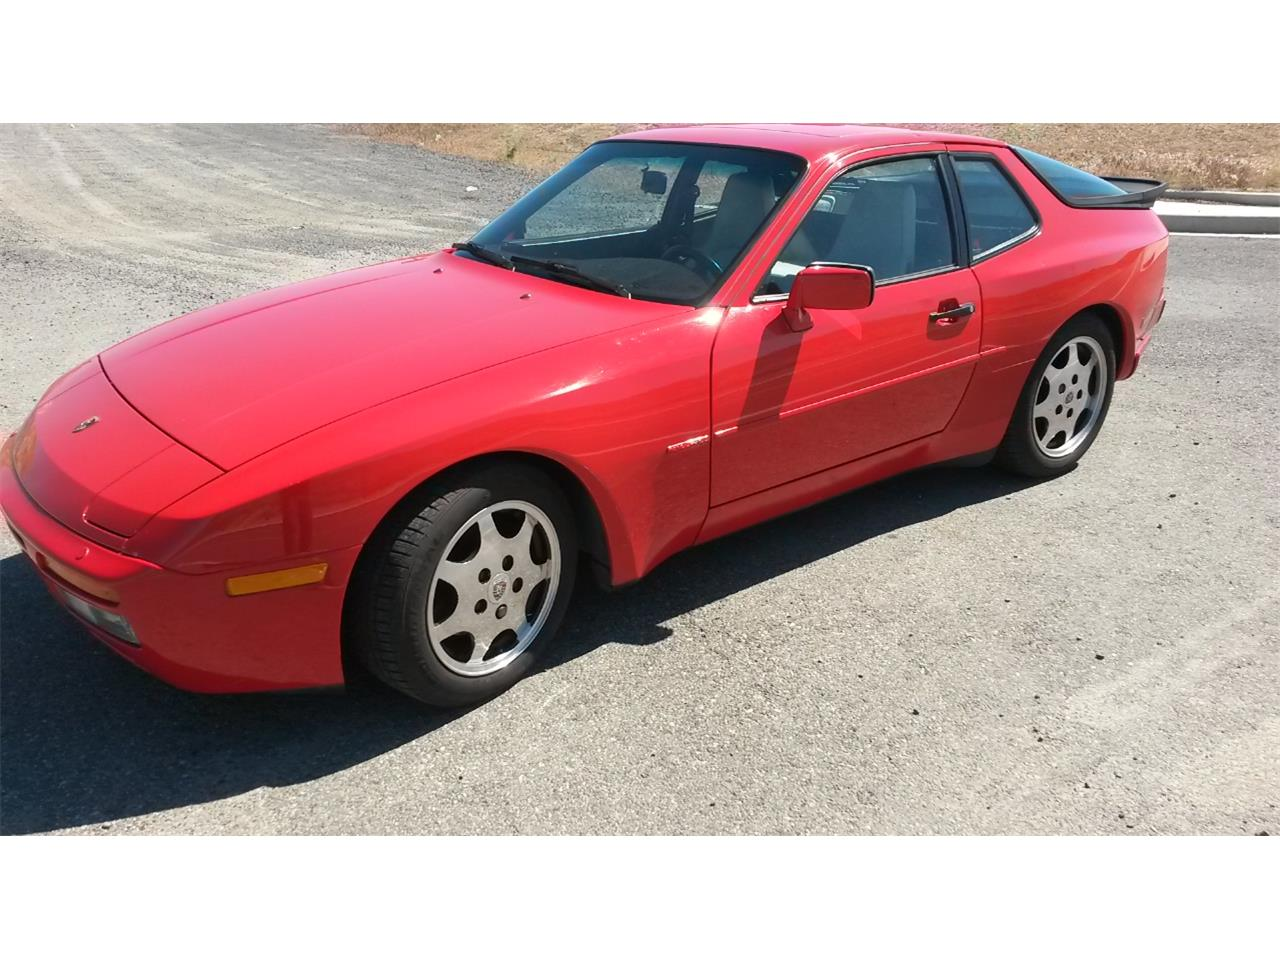 Large Picture of '89 944S2 located in Washington - $25,000.00 - L7PM